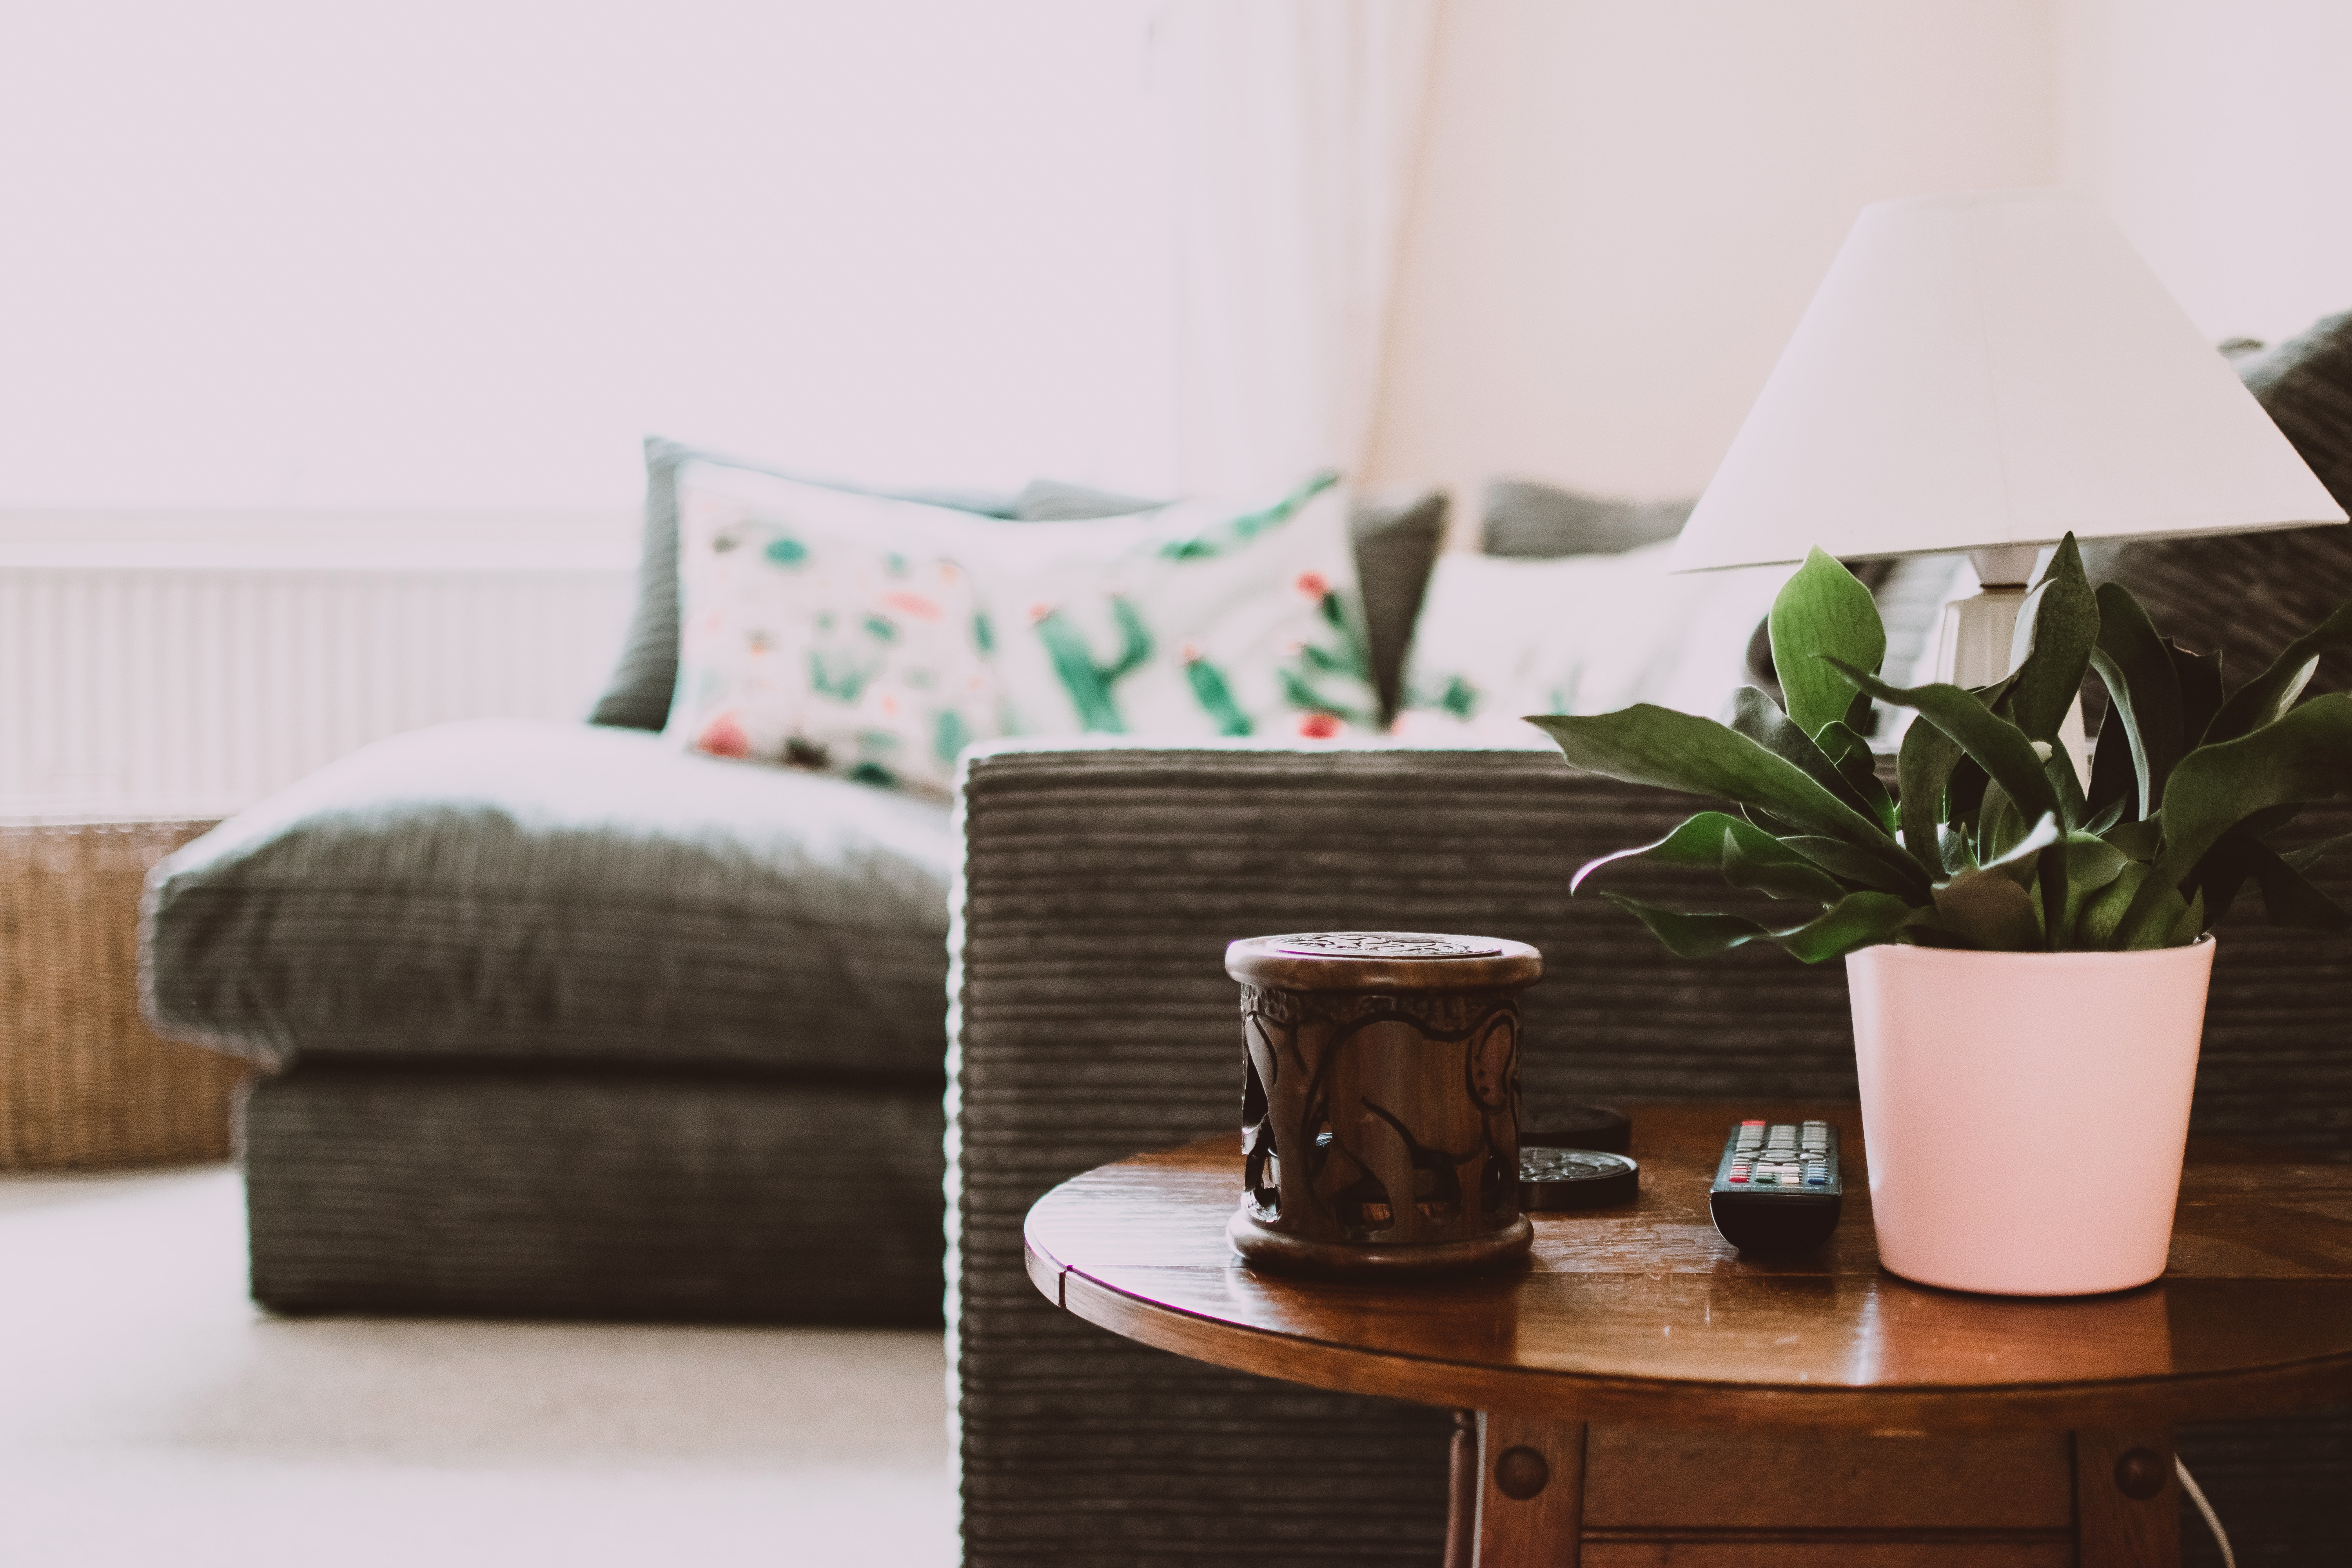 Getting Out of Student Loan Hell: Should You Use Your Home Equity?